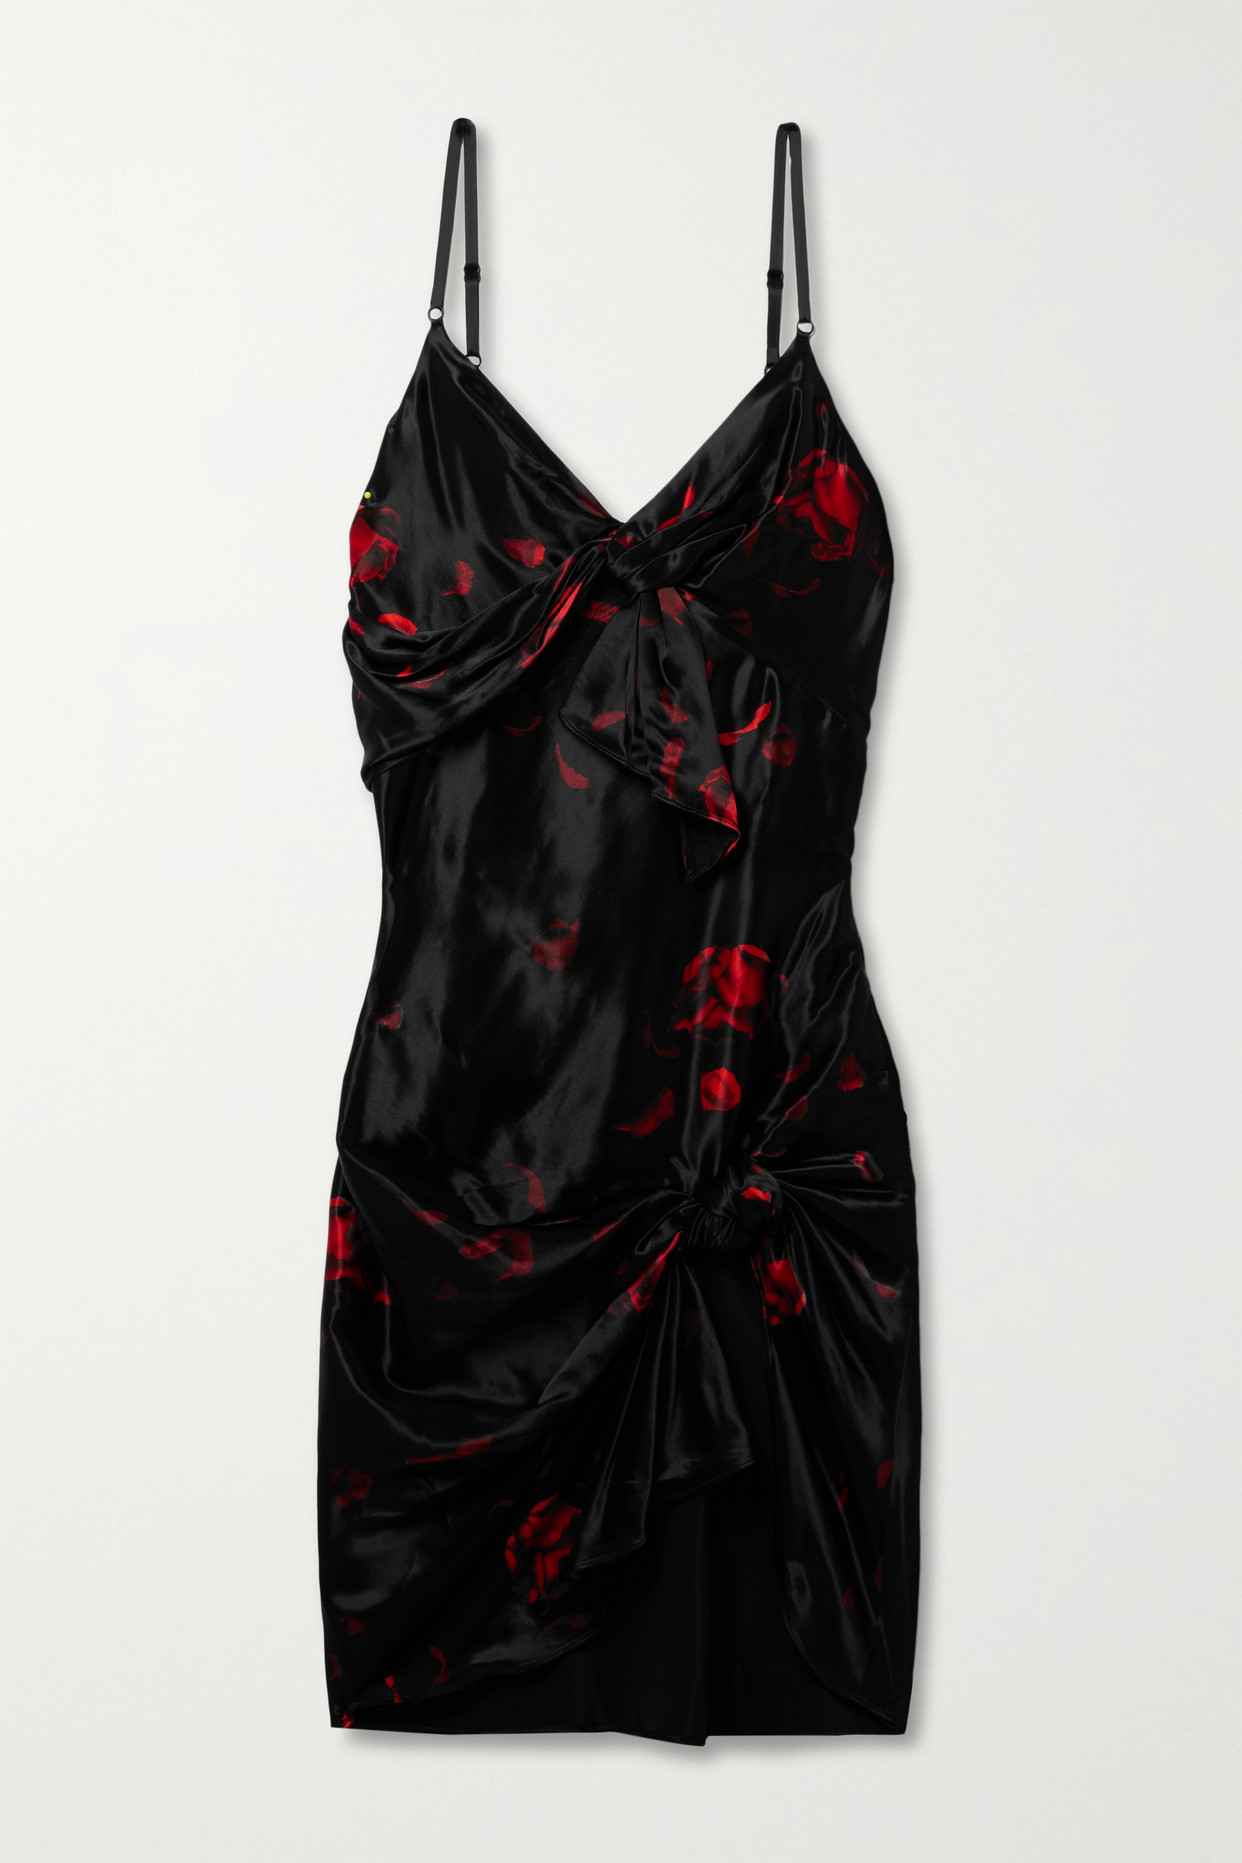 ALEXANDER WANG - Knotted Floral-print Satin Mini Dress - Black - US4